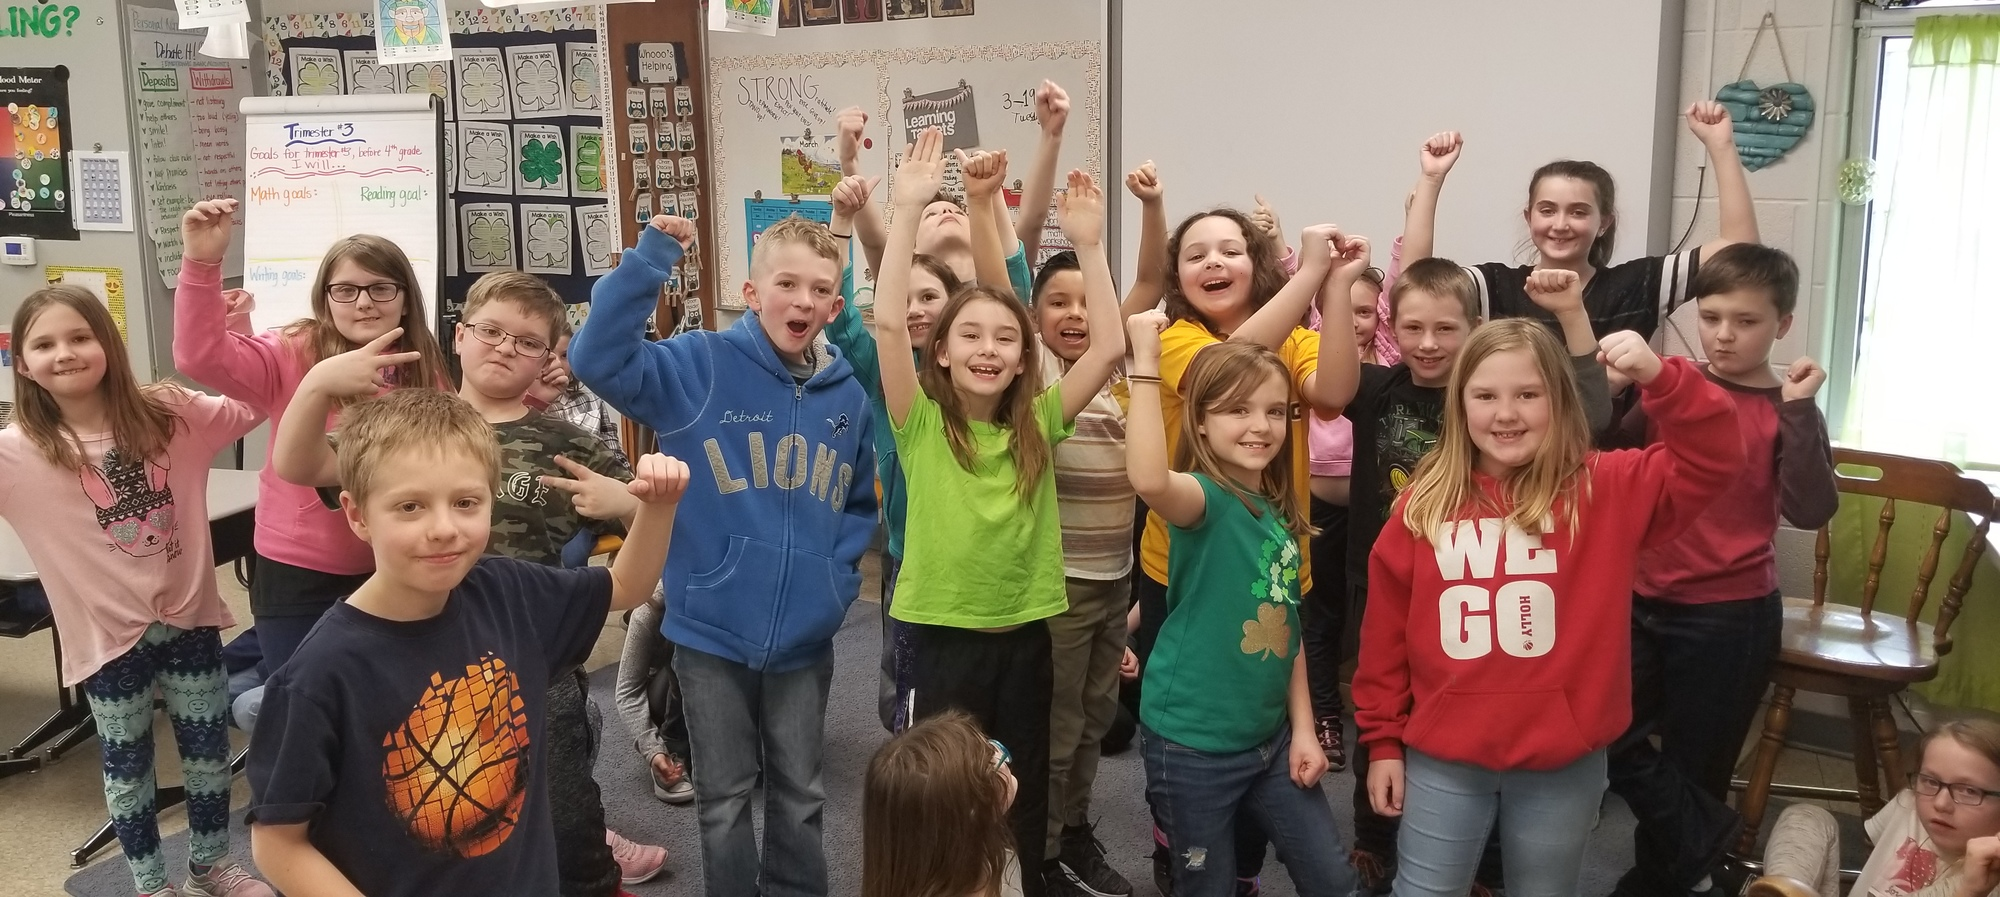 Third grade students at Davisburg standing and showing their I'm Strong faces.